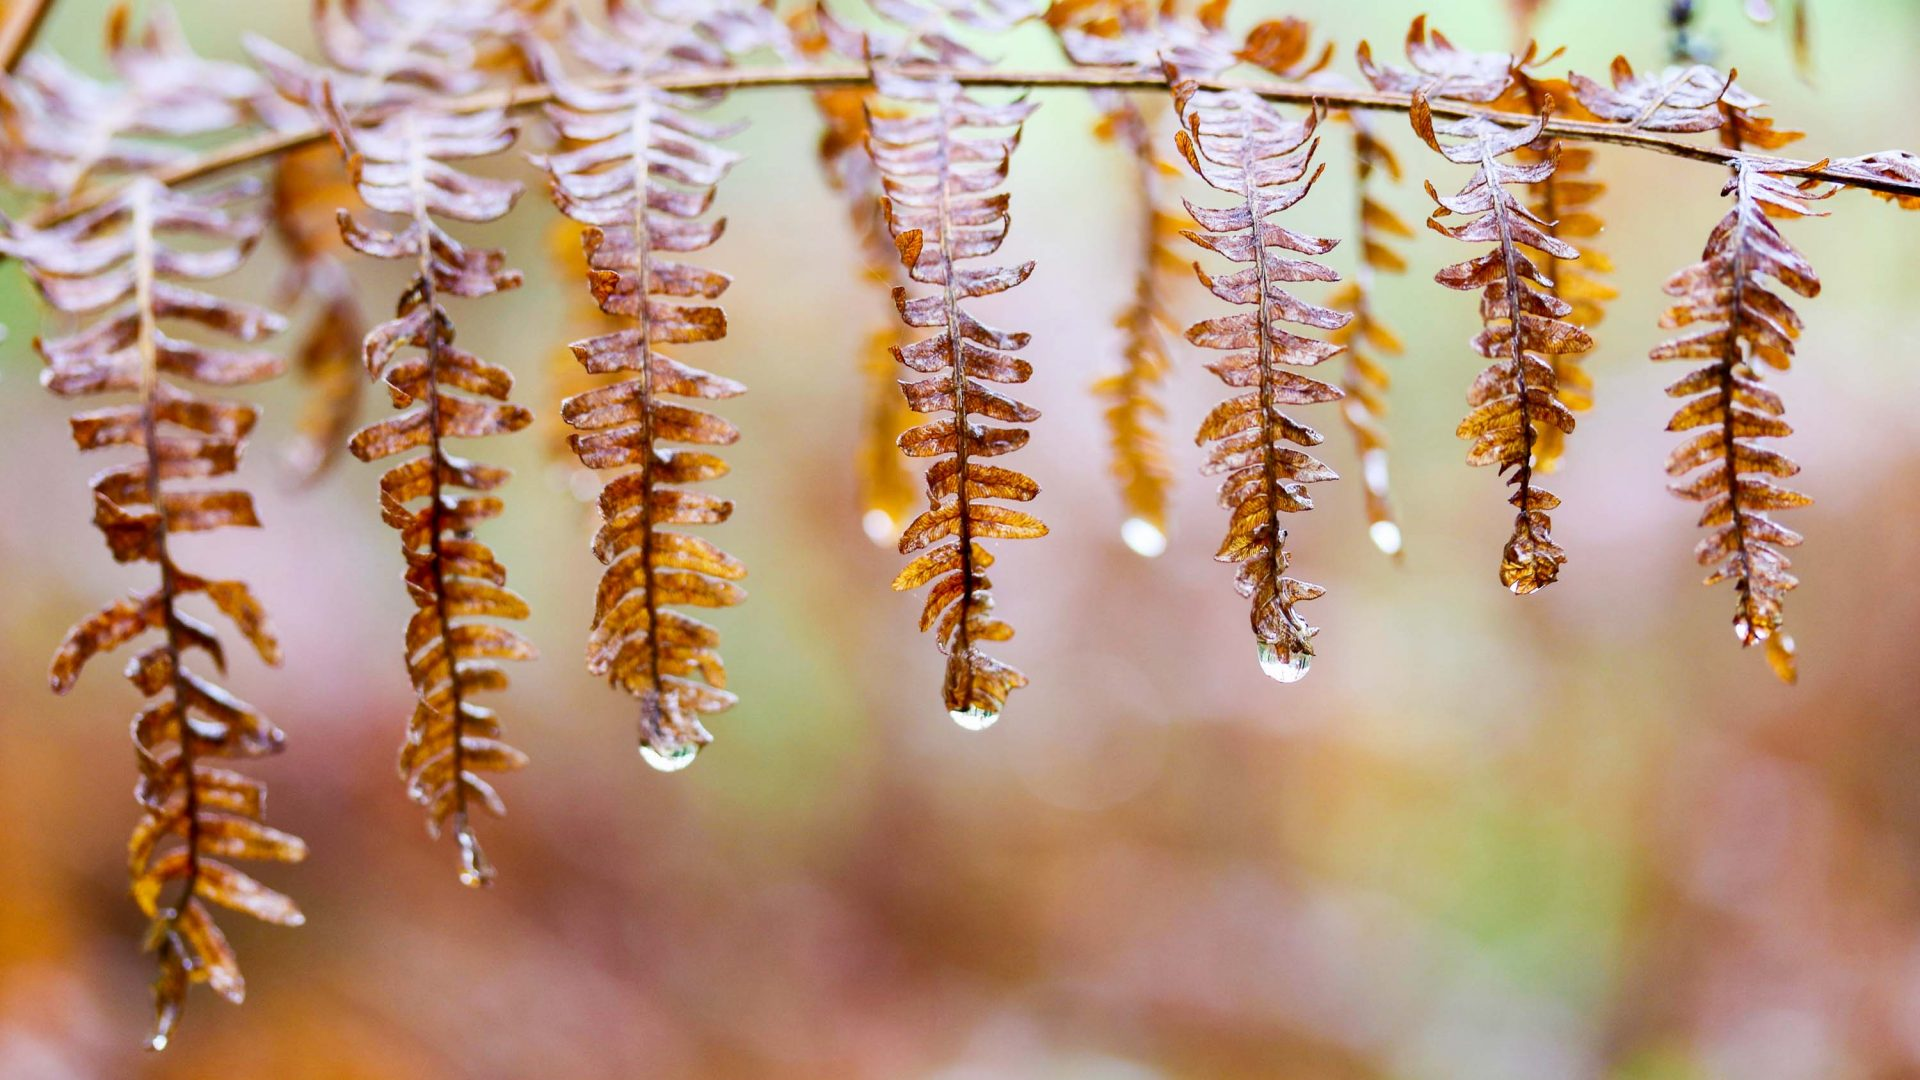 Drops of water cling to a fern.